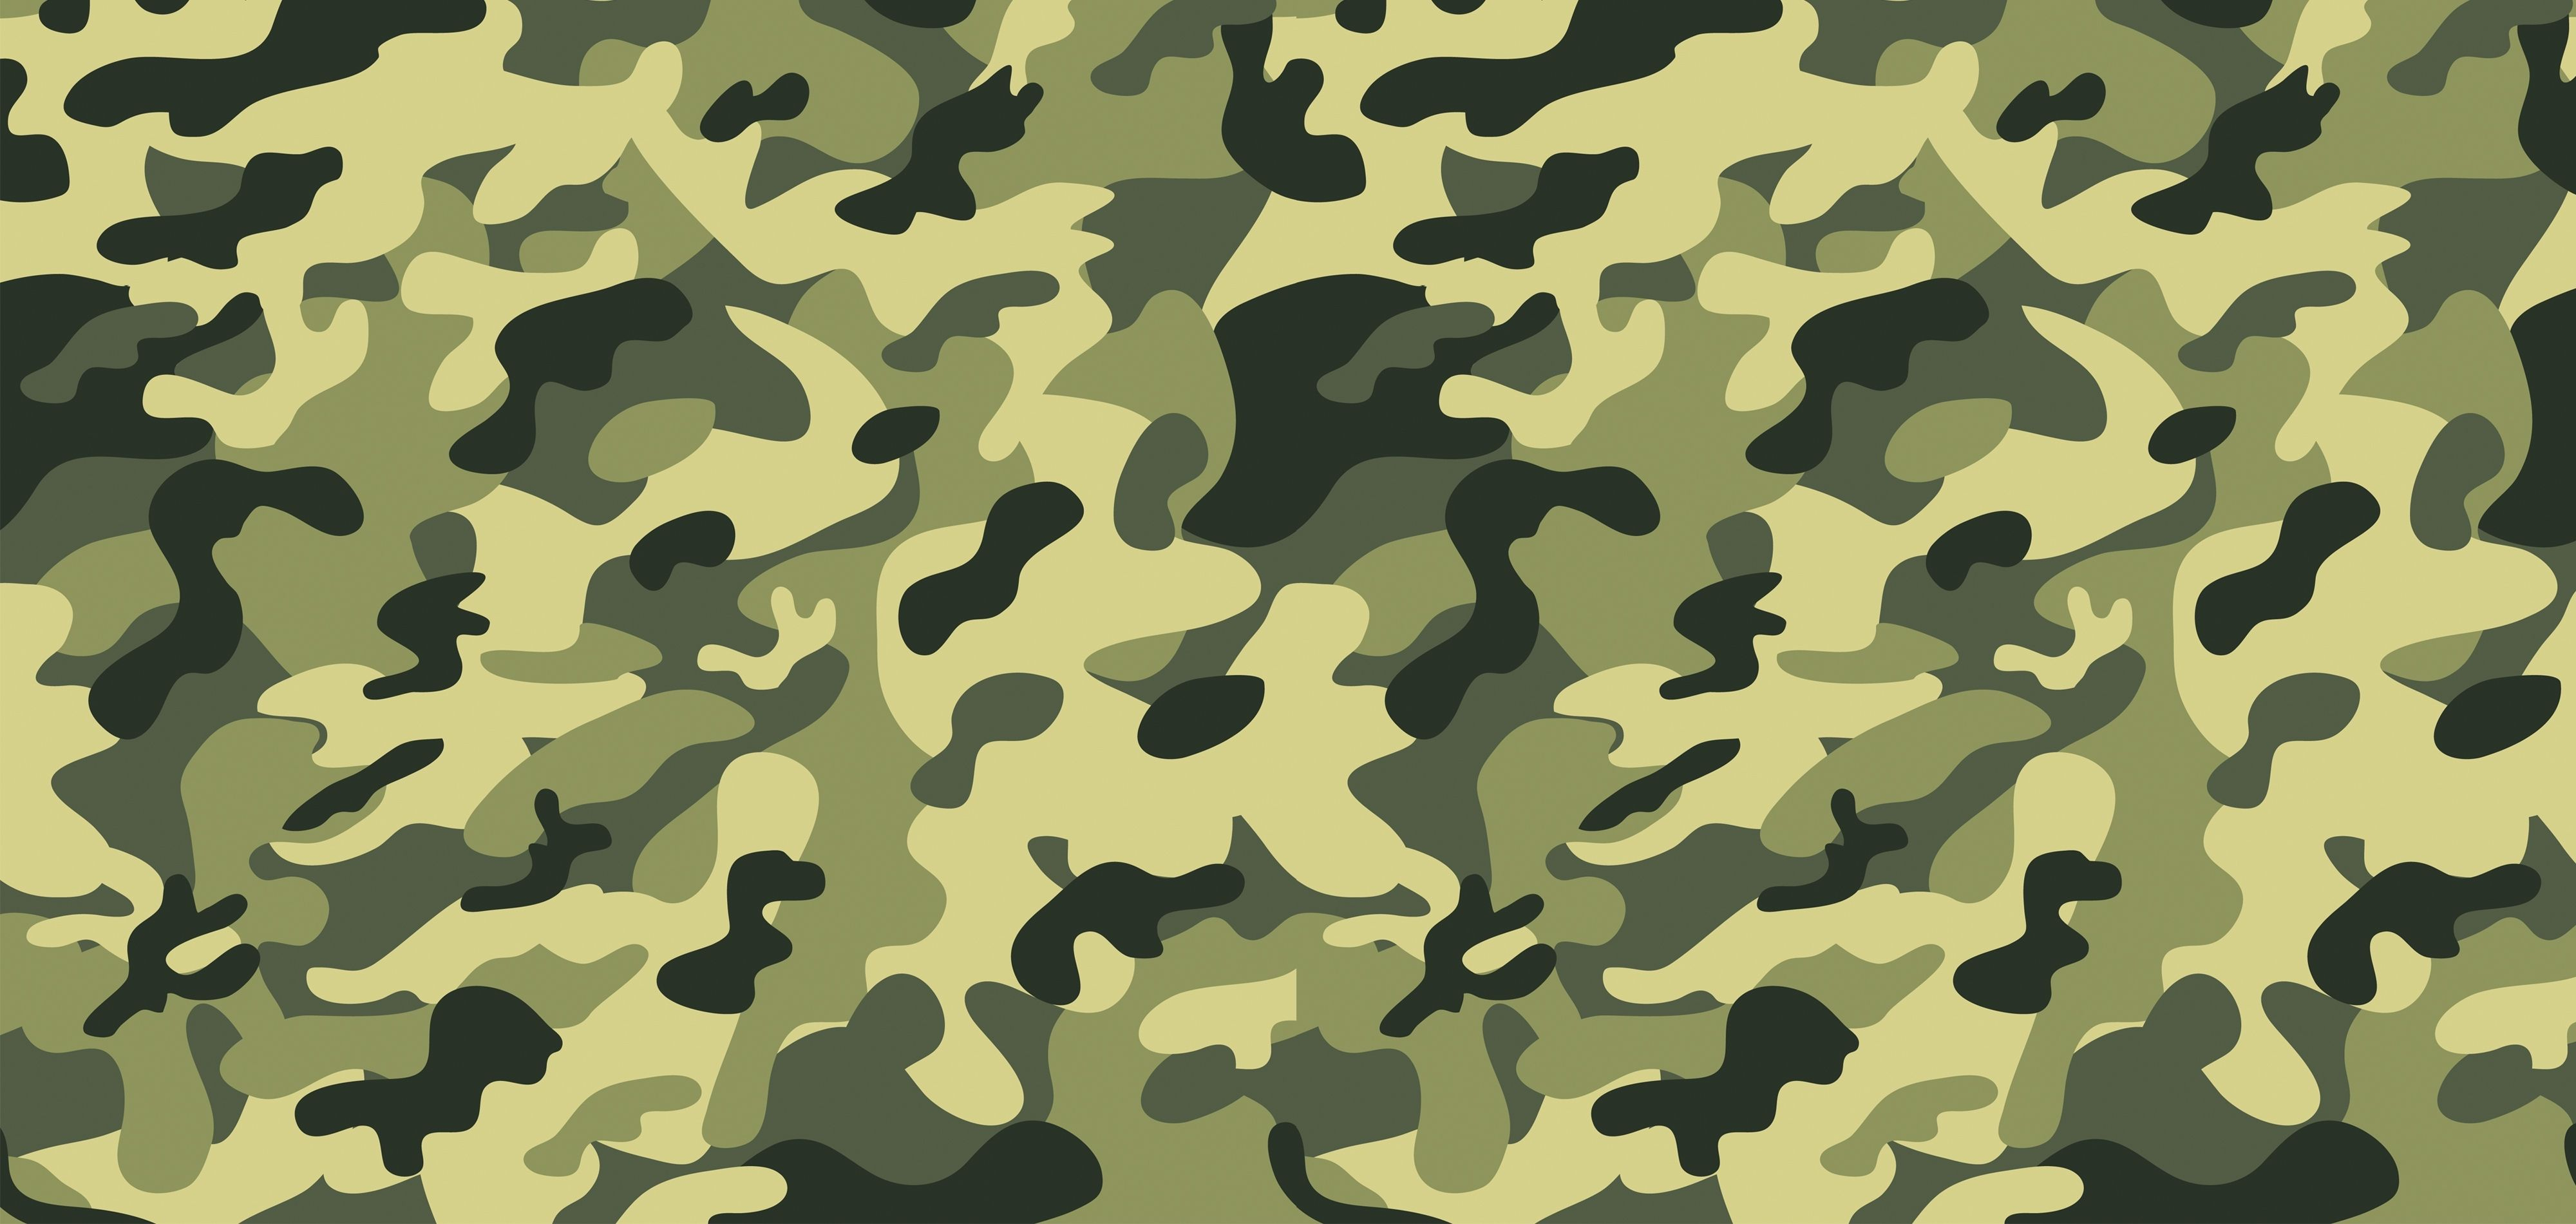 Free Printable Camo !!!!!!!!!! It Works Too! Download Original - Free Printable Camouflage Stencils